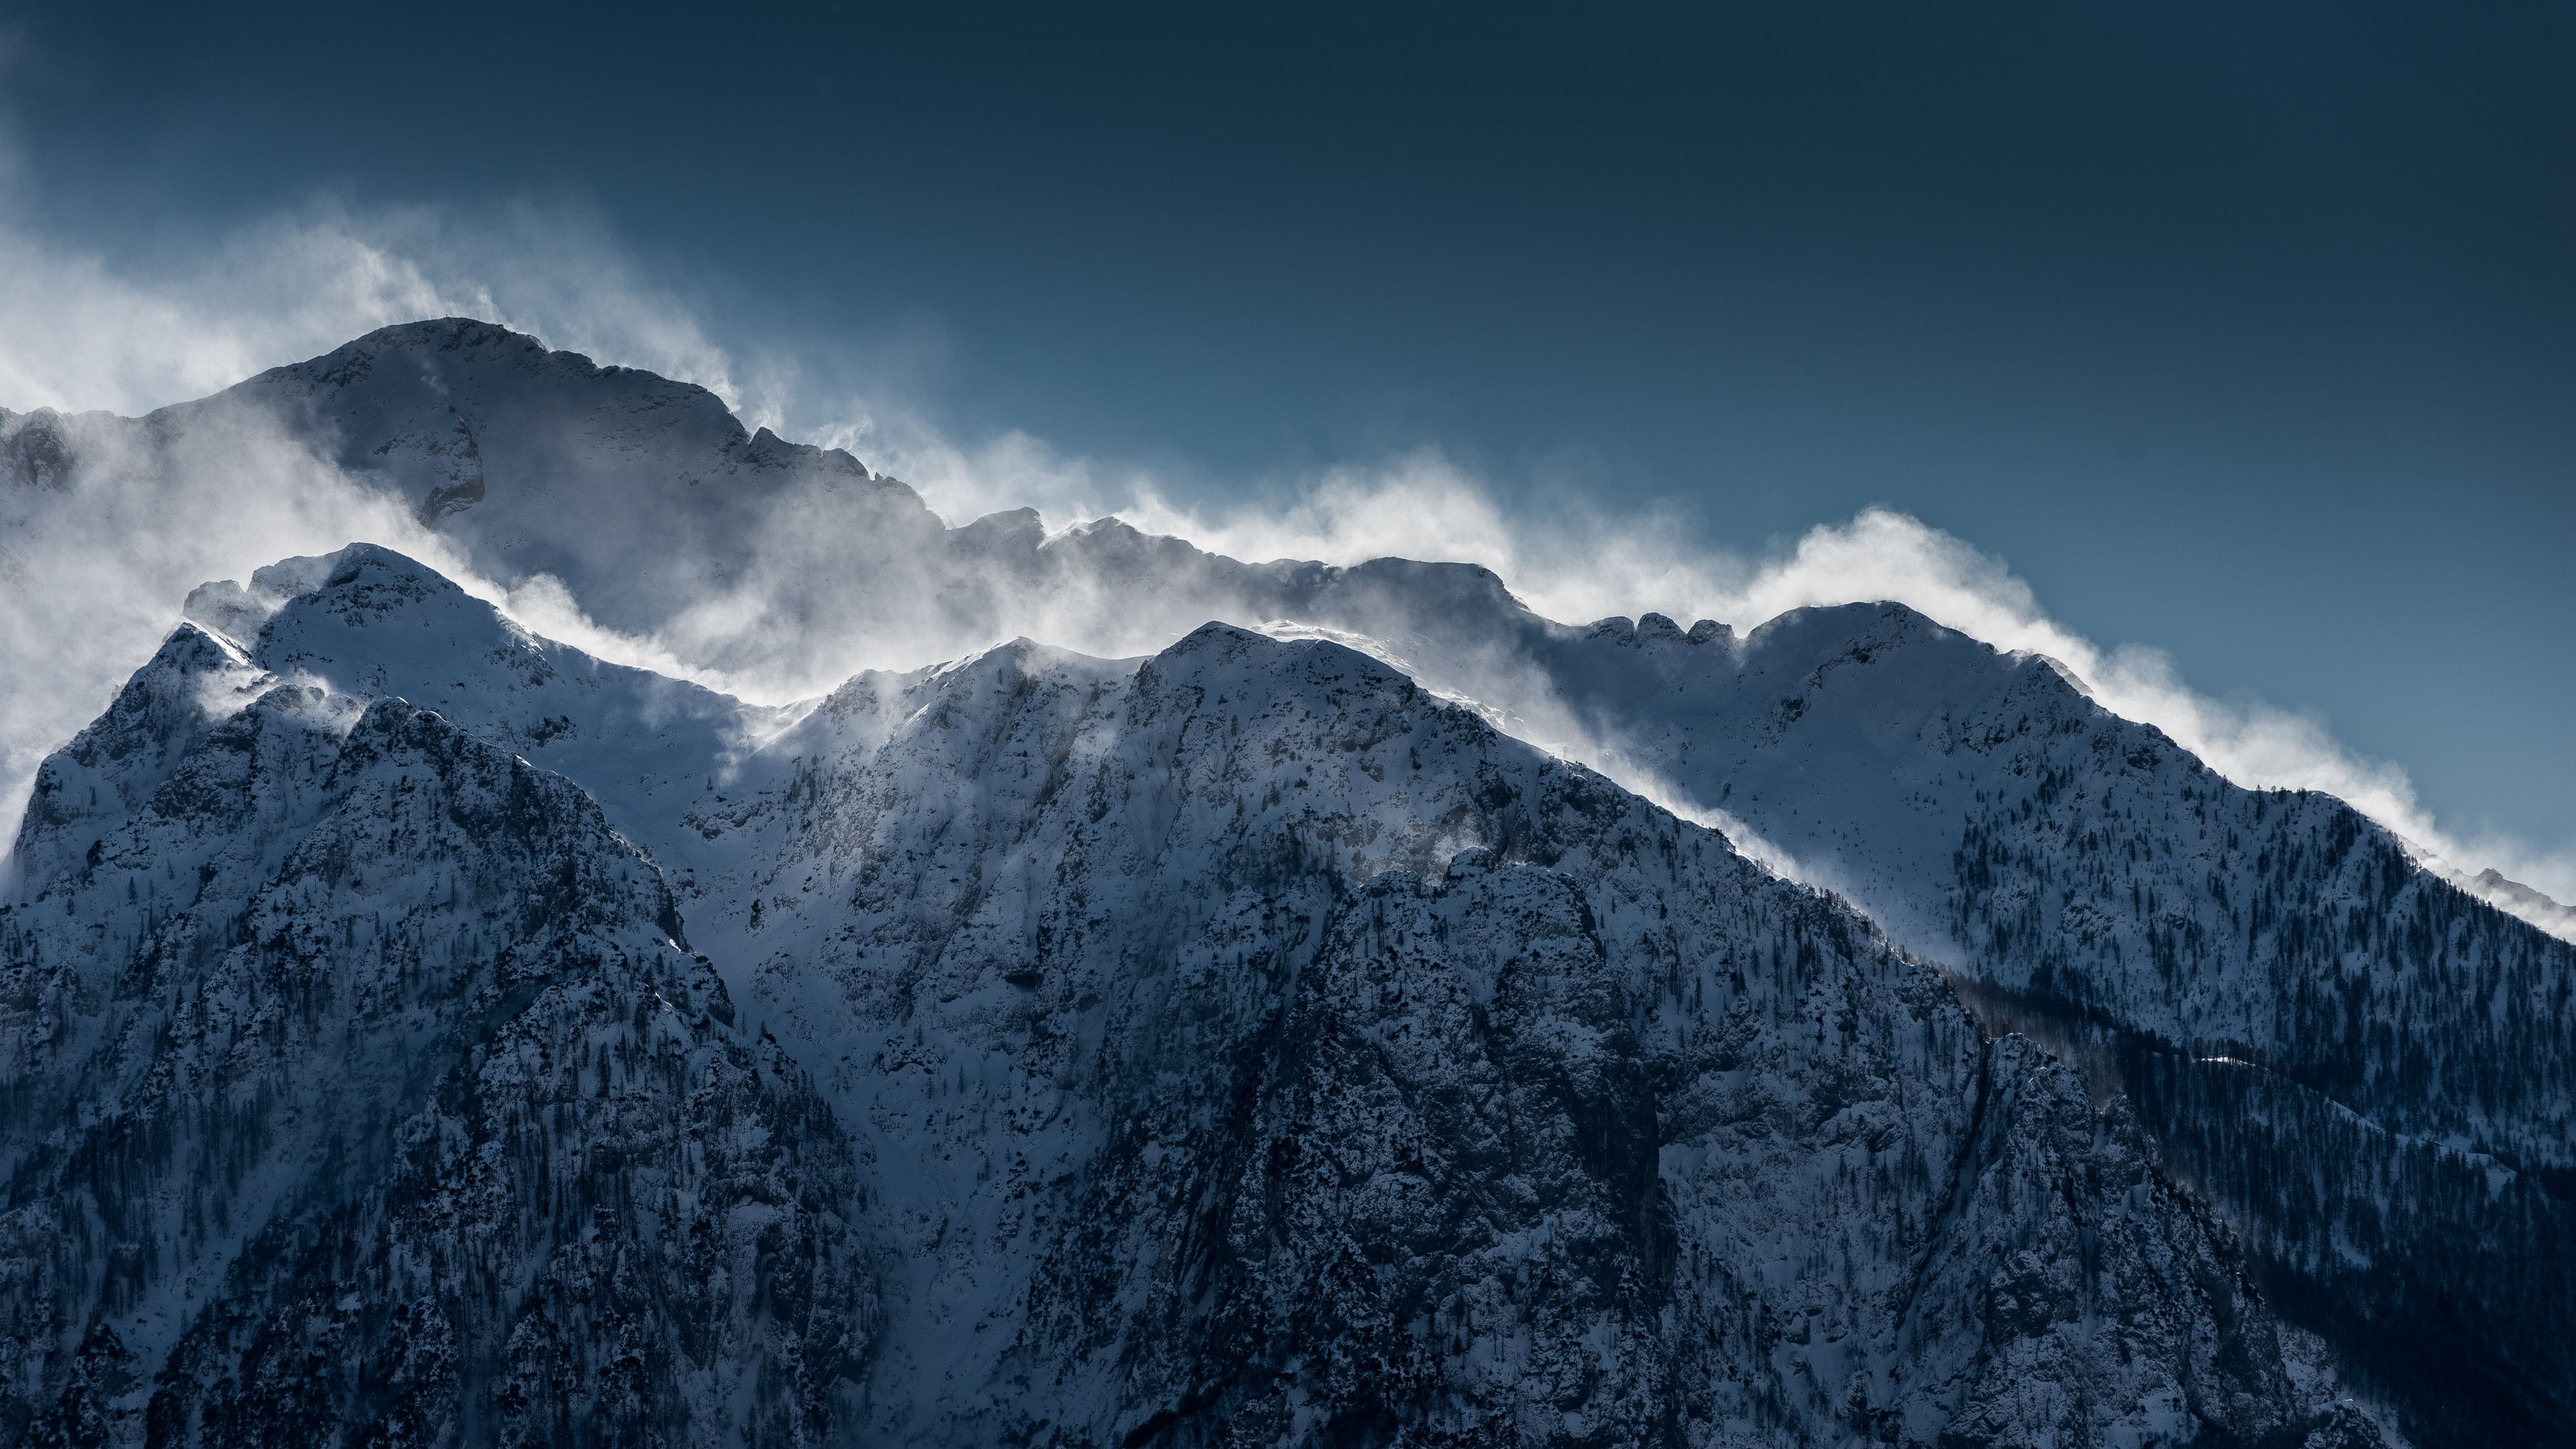 clouds over snow mountain range cliff 4k 1540142884 - Clouds Over Snow Mountain Range Cliff 4k - snow wallpapers, nature wallpapers, mountains wallpapers, hd-wallpapers, clouds wallpapers, 5k wallpapers, 4k-wallpapers